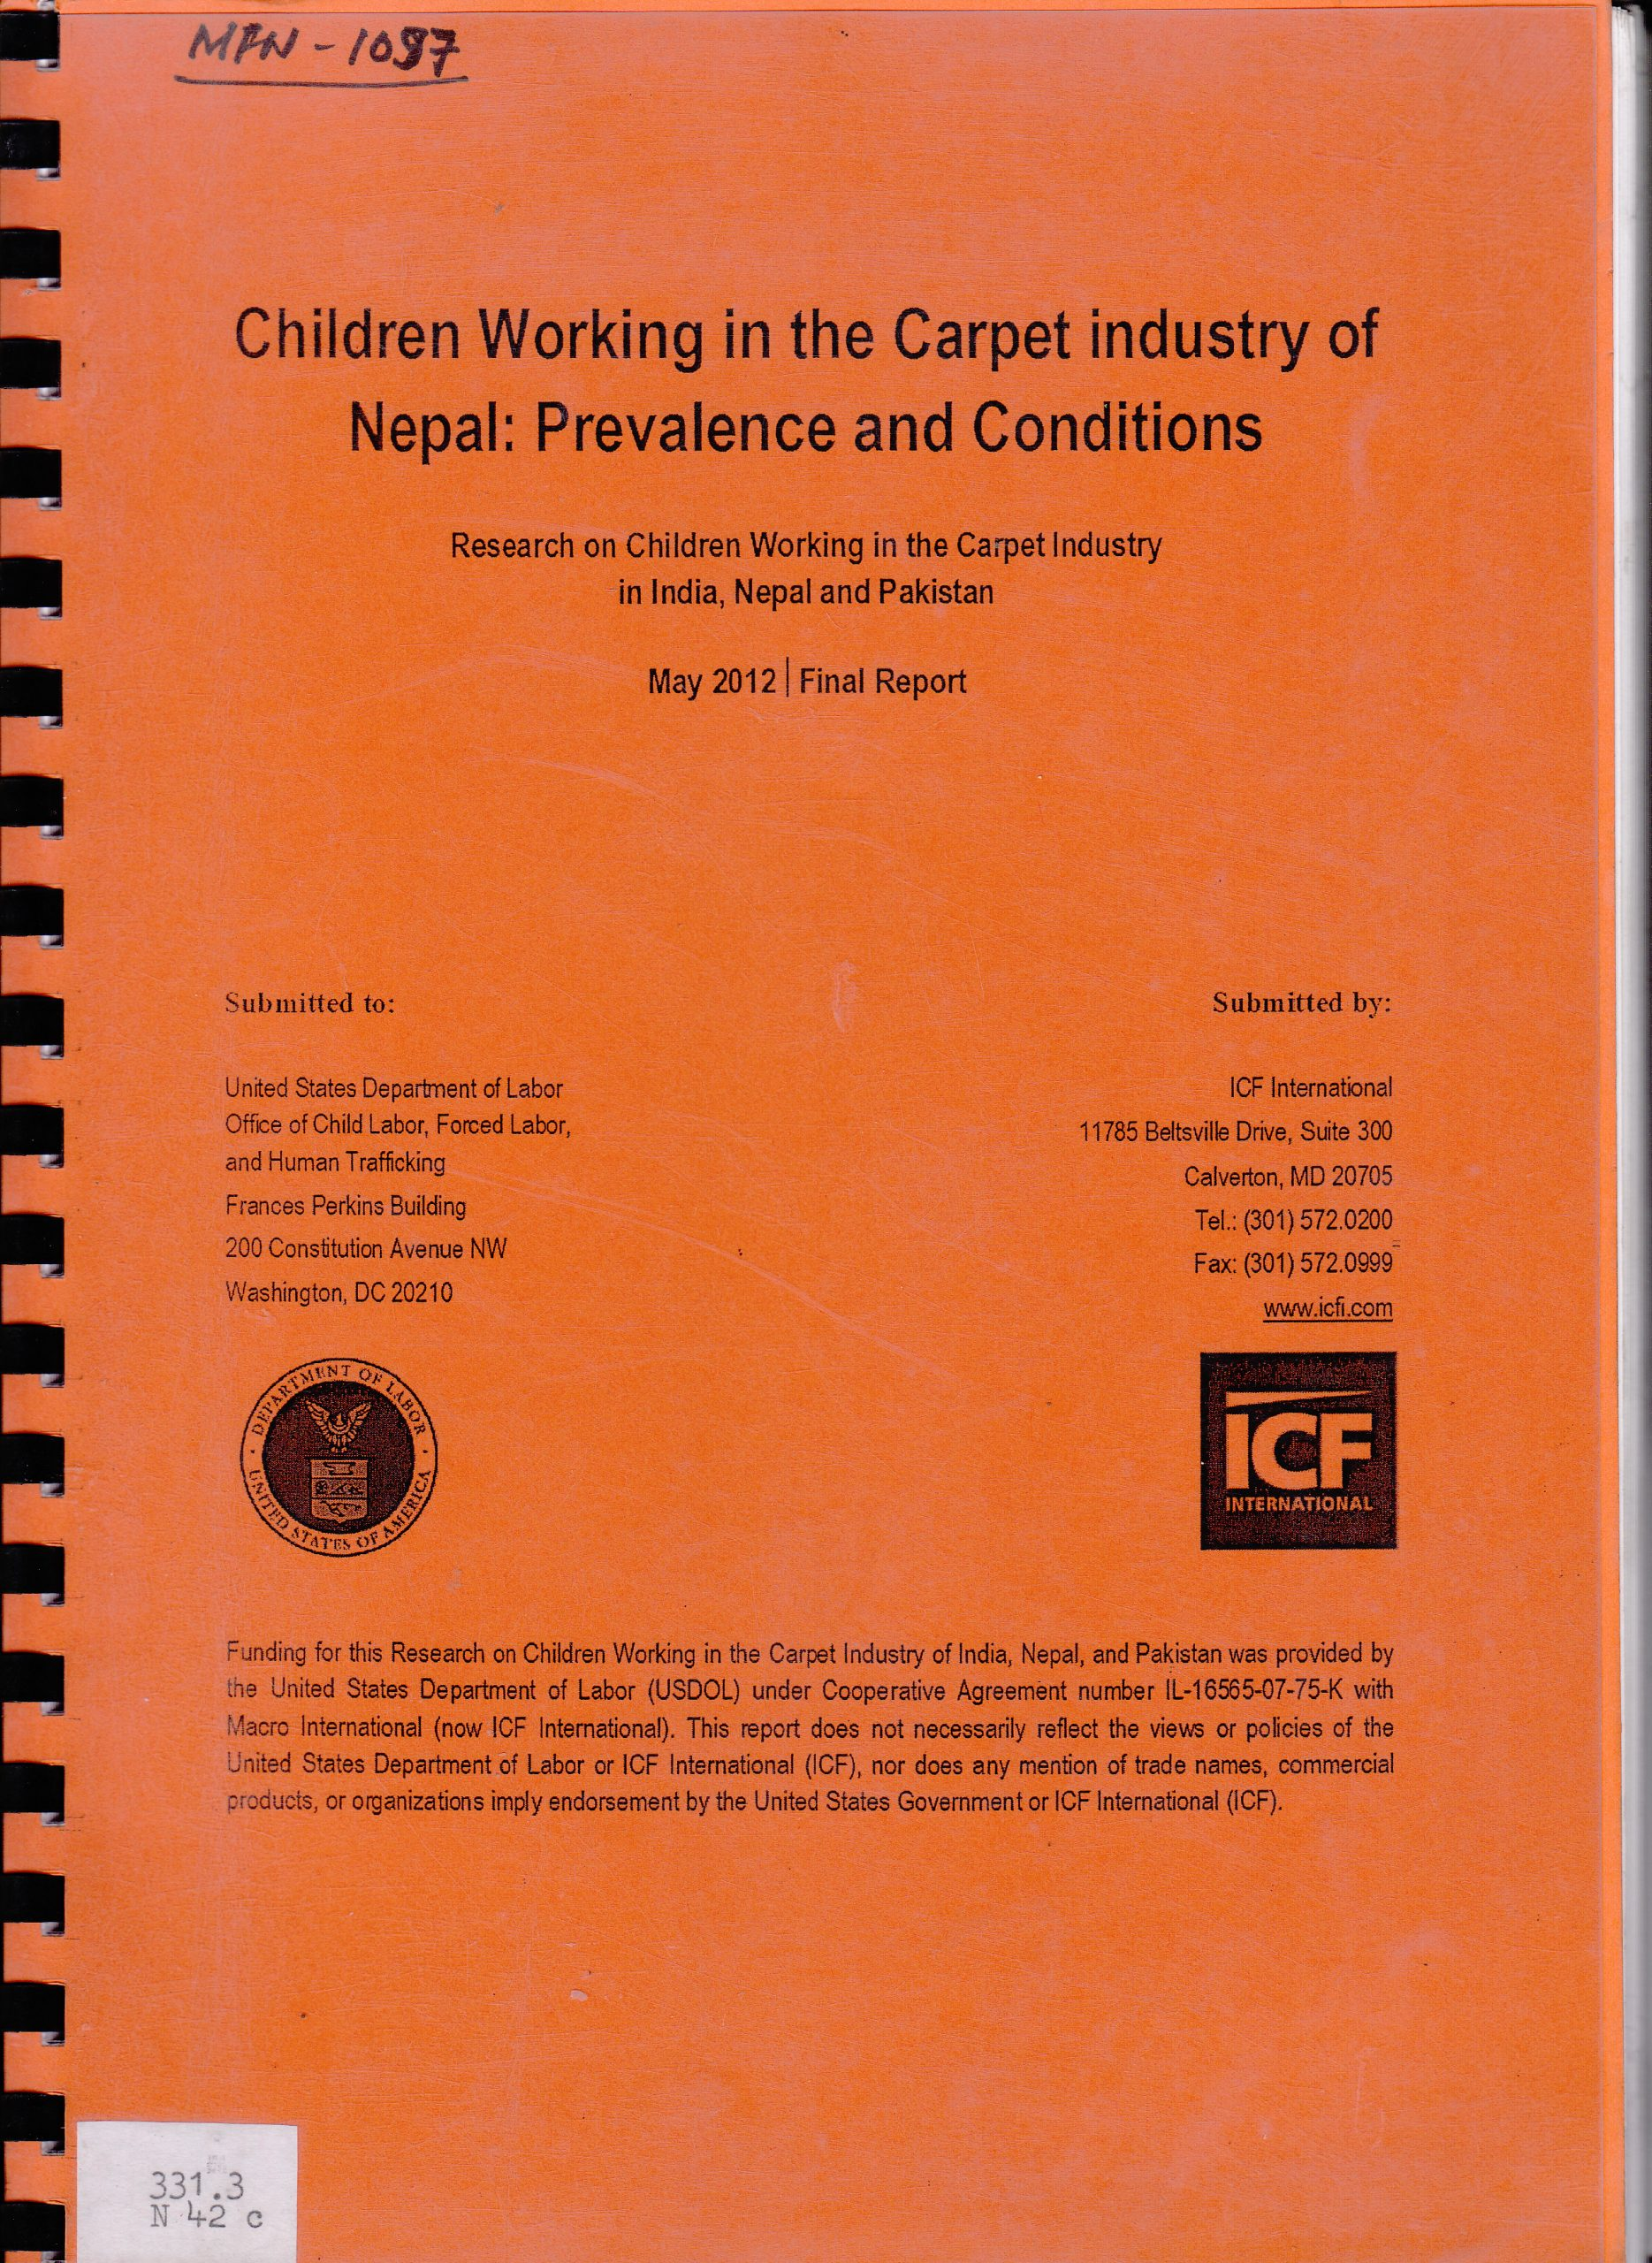 Children Working in the Carpet Industry of Nepal: Prevalence and Conditions